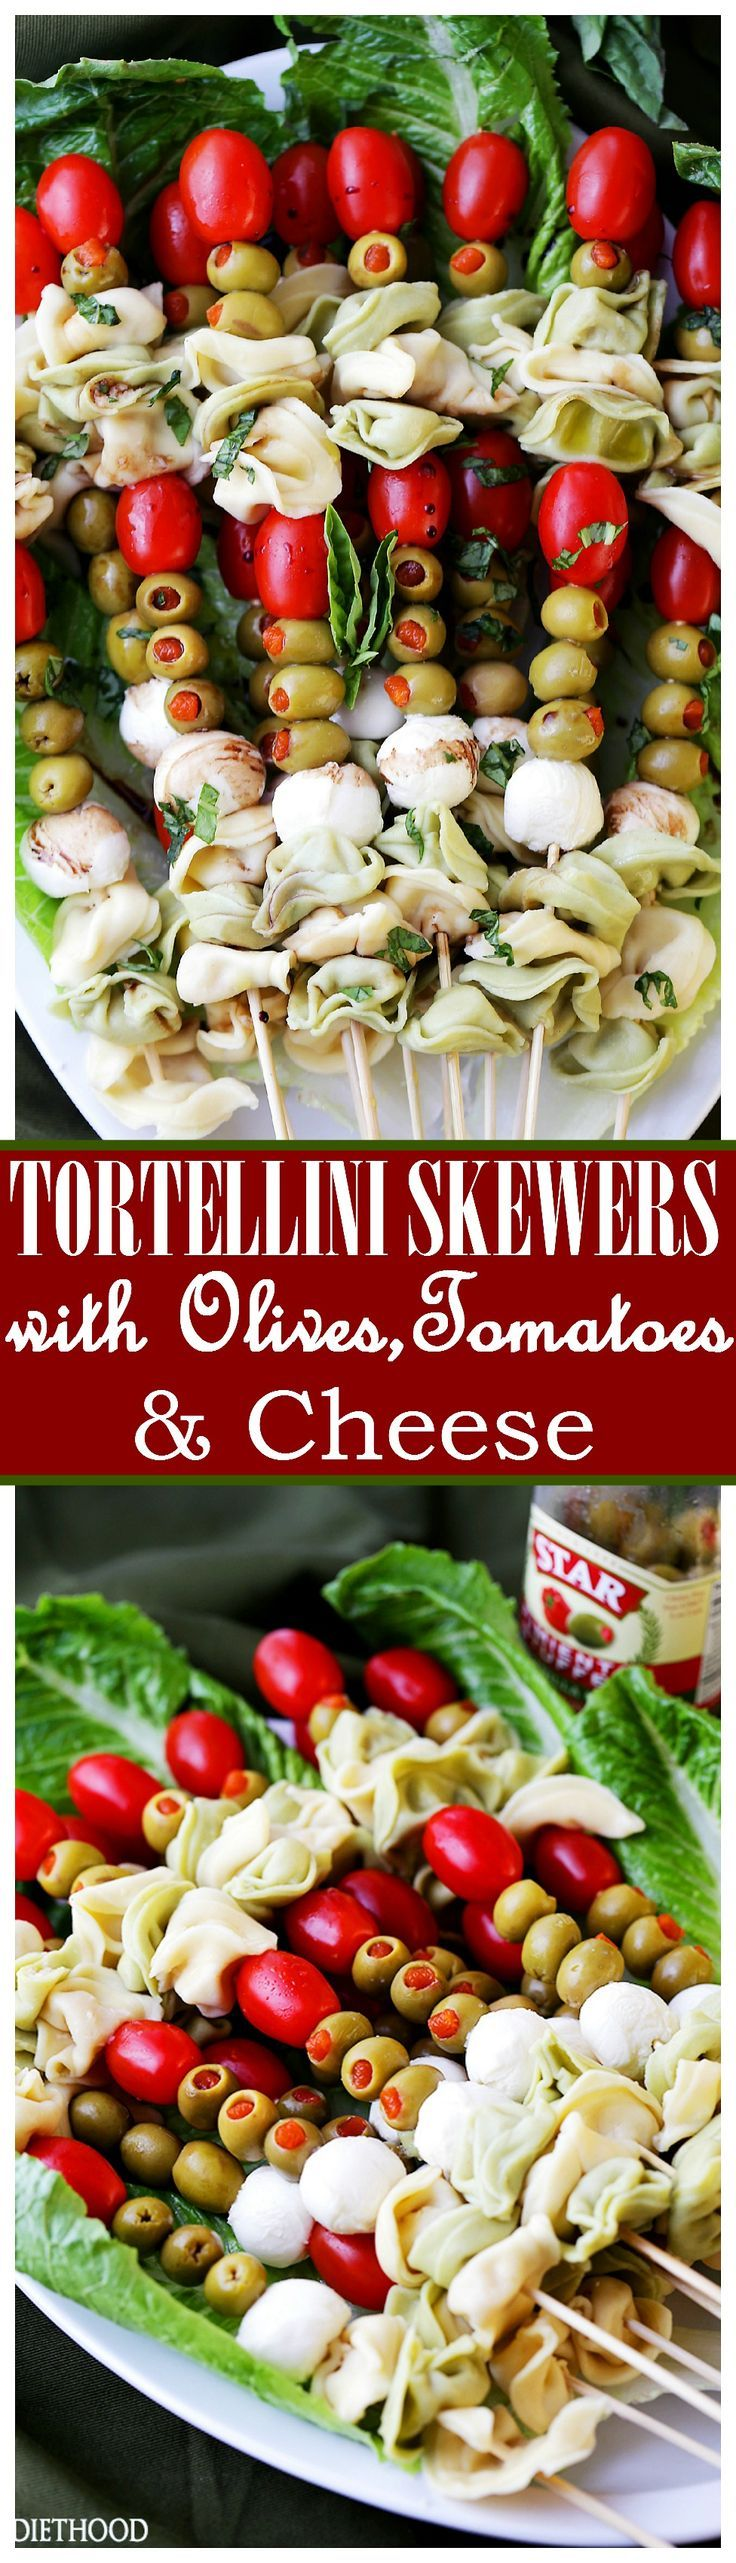 Tortellini Skewers with Olives Tomatoes and Cheese Recipe - Fun and festive appetizer plate with cheesy tortellini flavorful manzanilla olives, grape tomatoes and fresh mozzarella cheese threaded on skewers. A gorgeous addition to your Holiday table!